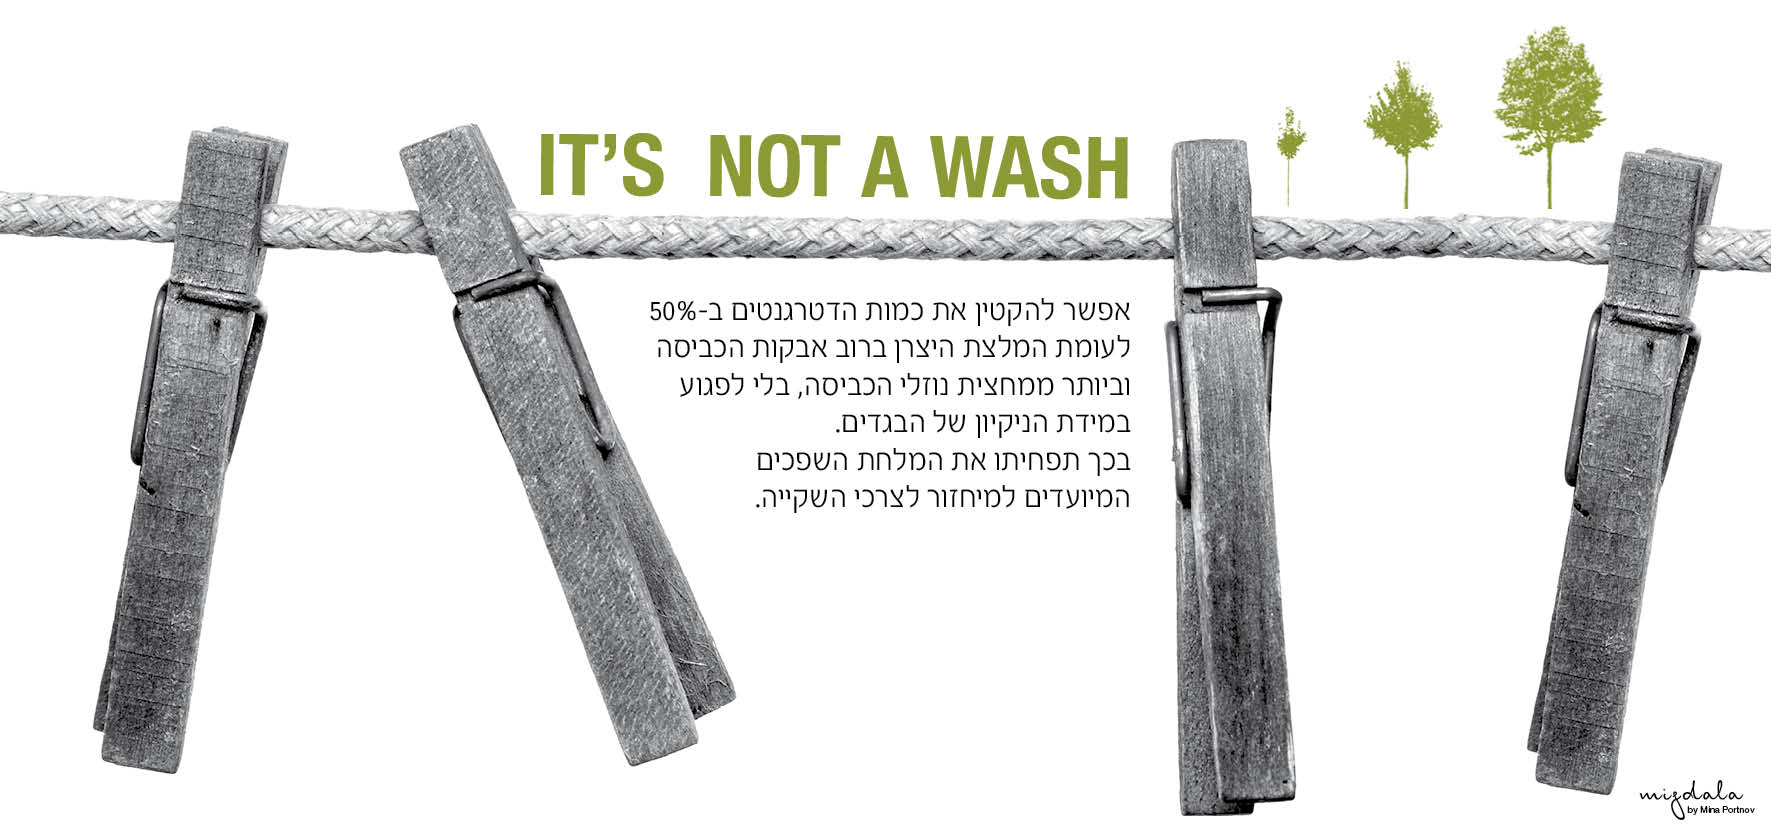 IT'S NOT A WASH